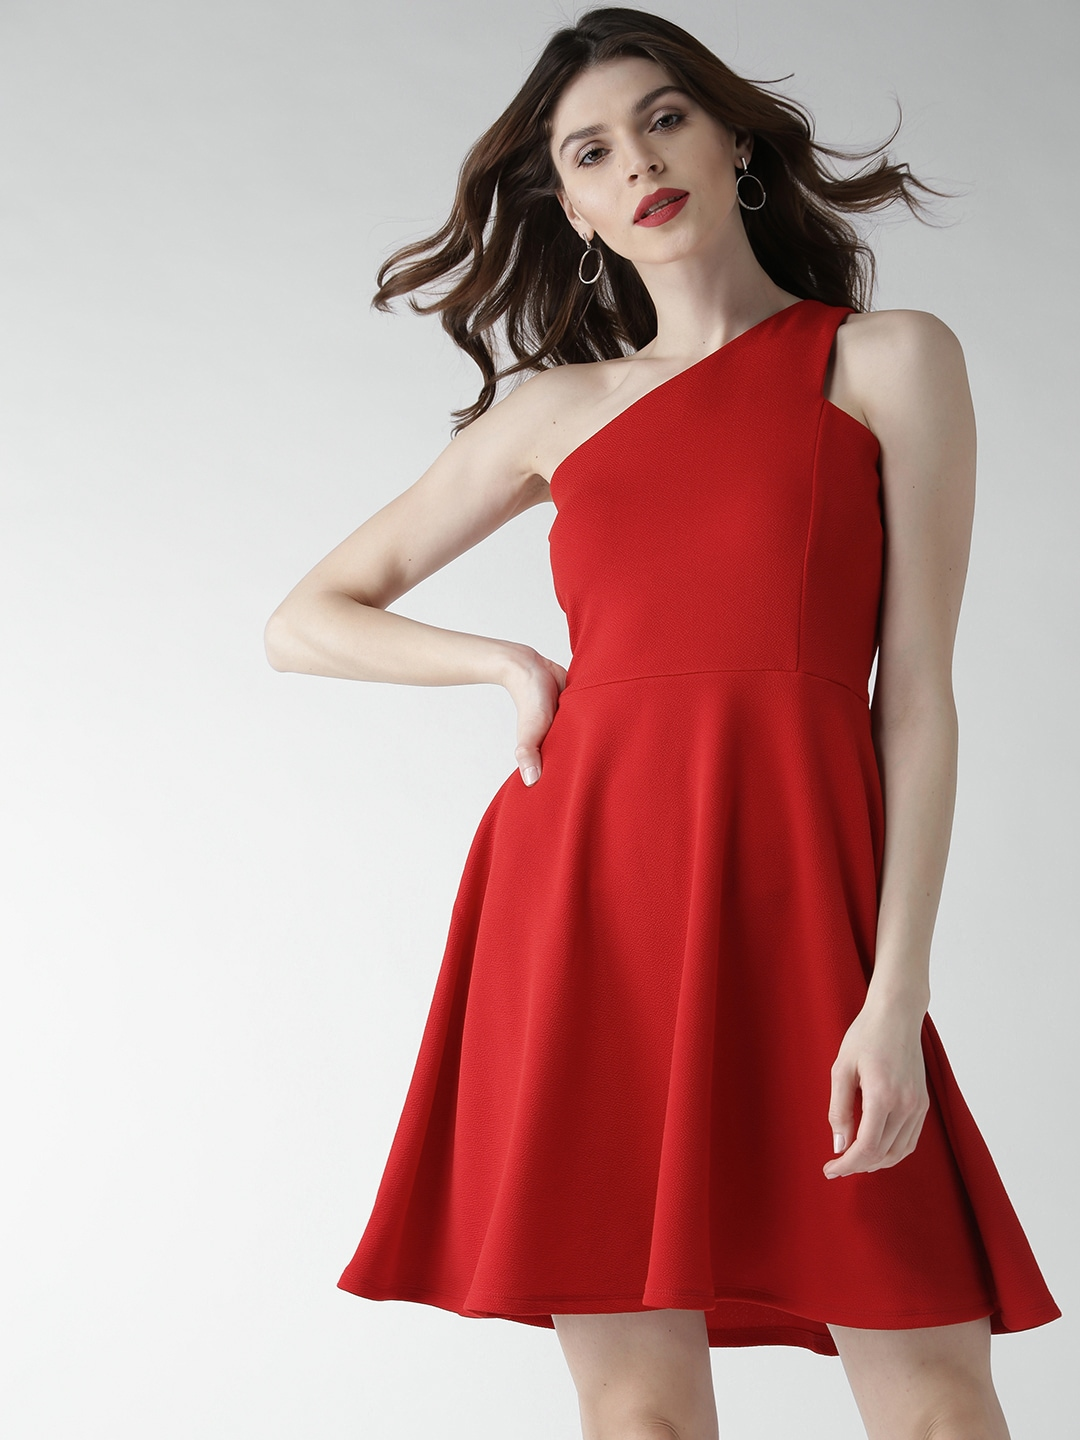 Red Dress | Buy Red Dress Online in India